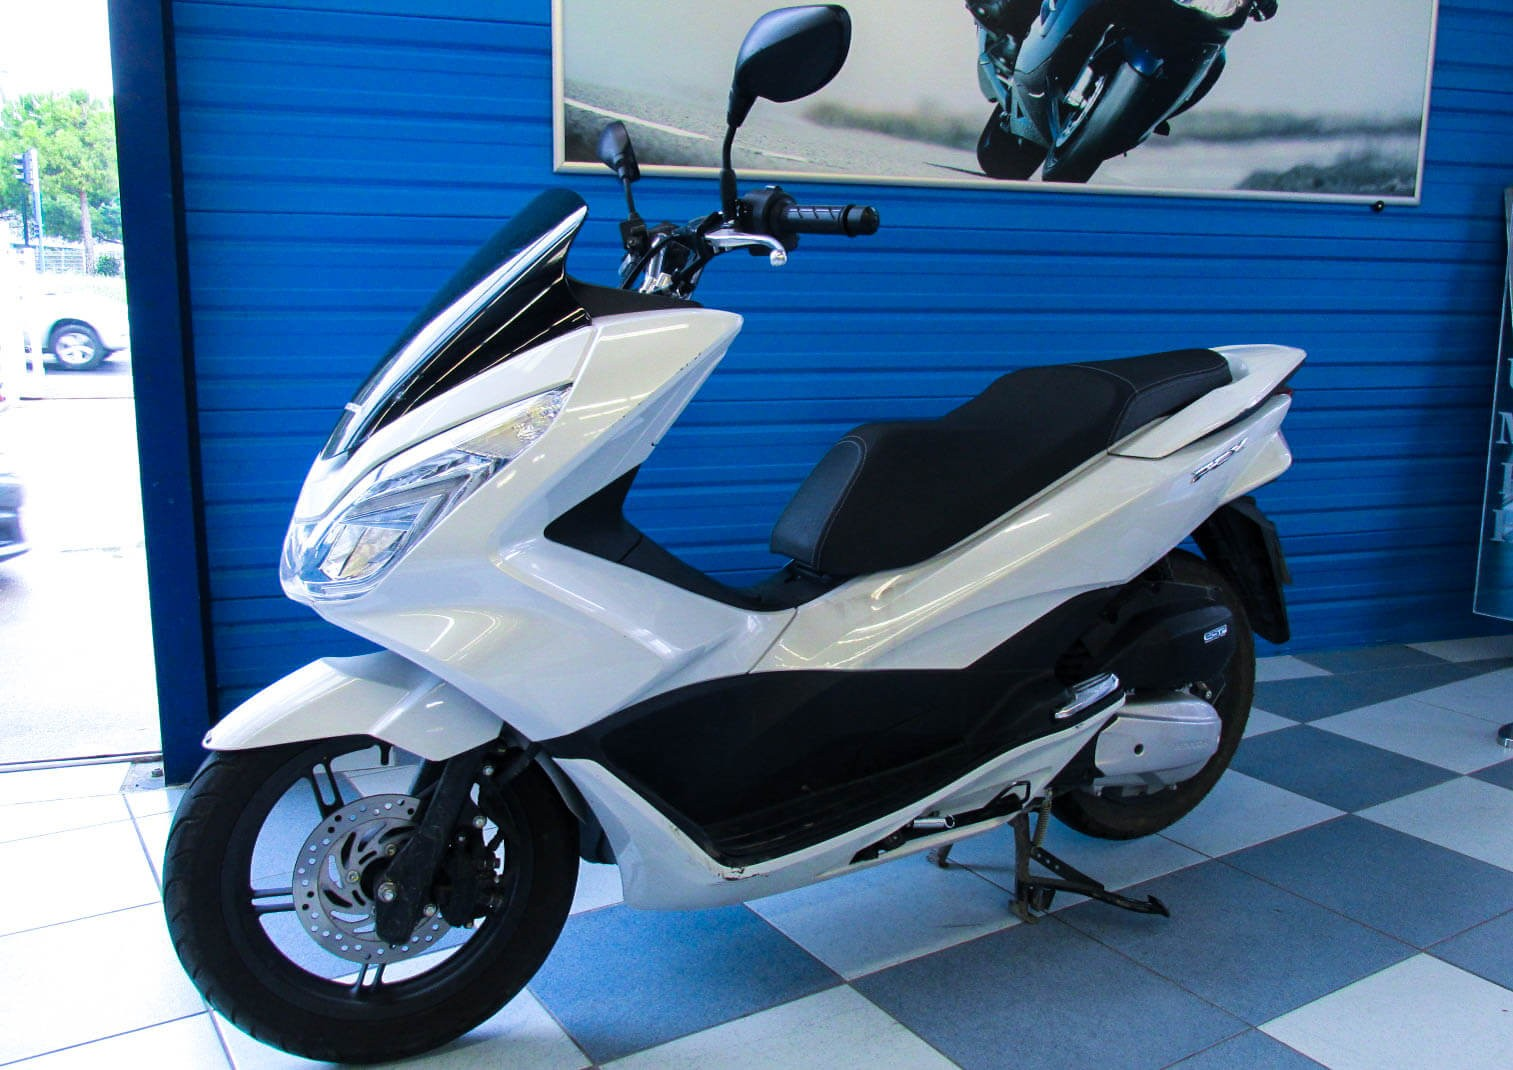 location honda pcx 125 montpellier easy renter. Black Bedroom Furniture Sets. Home Design Ideas